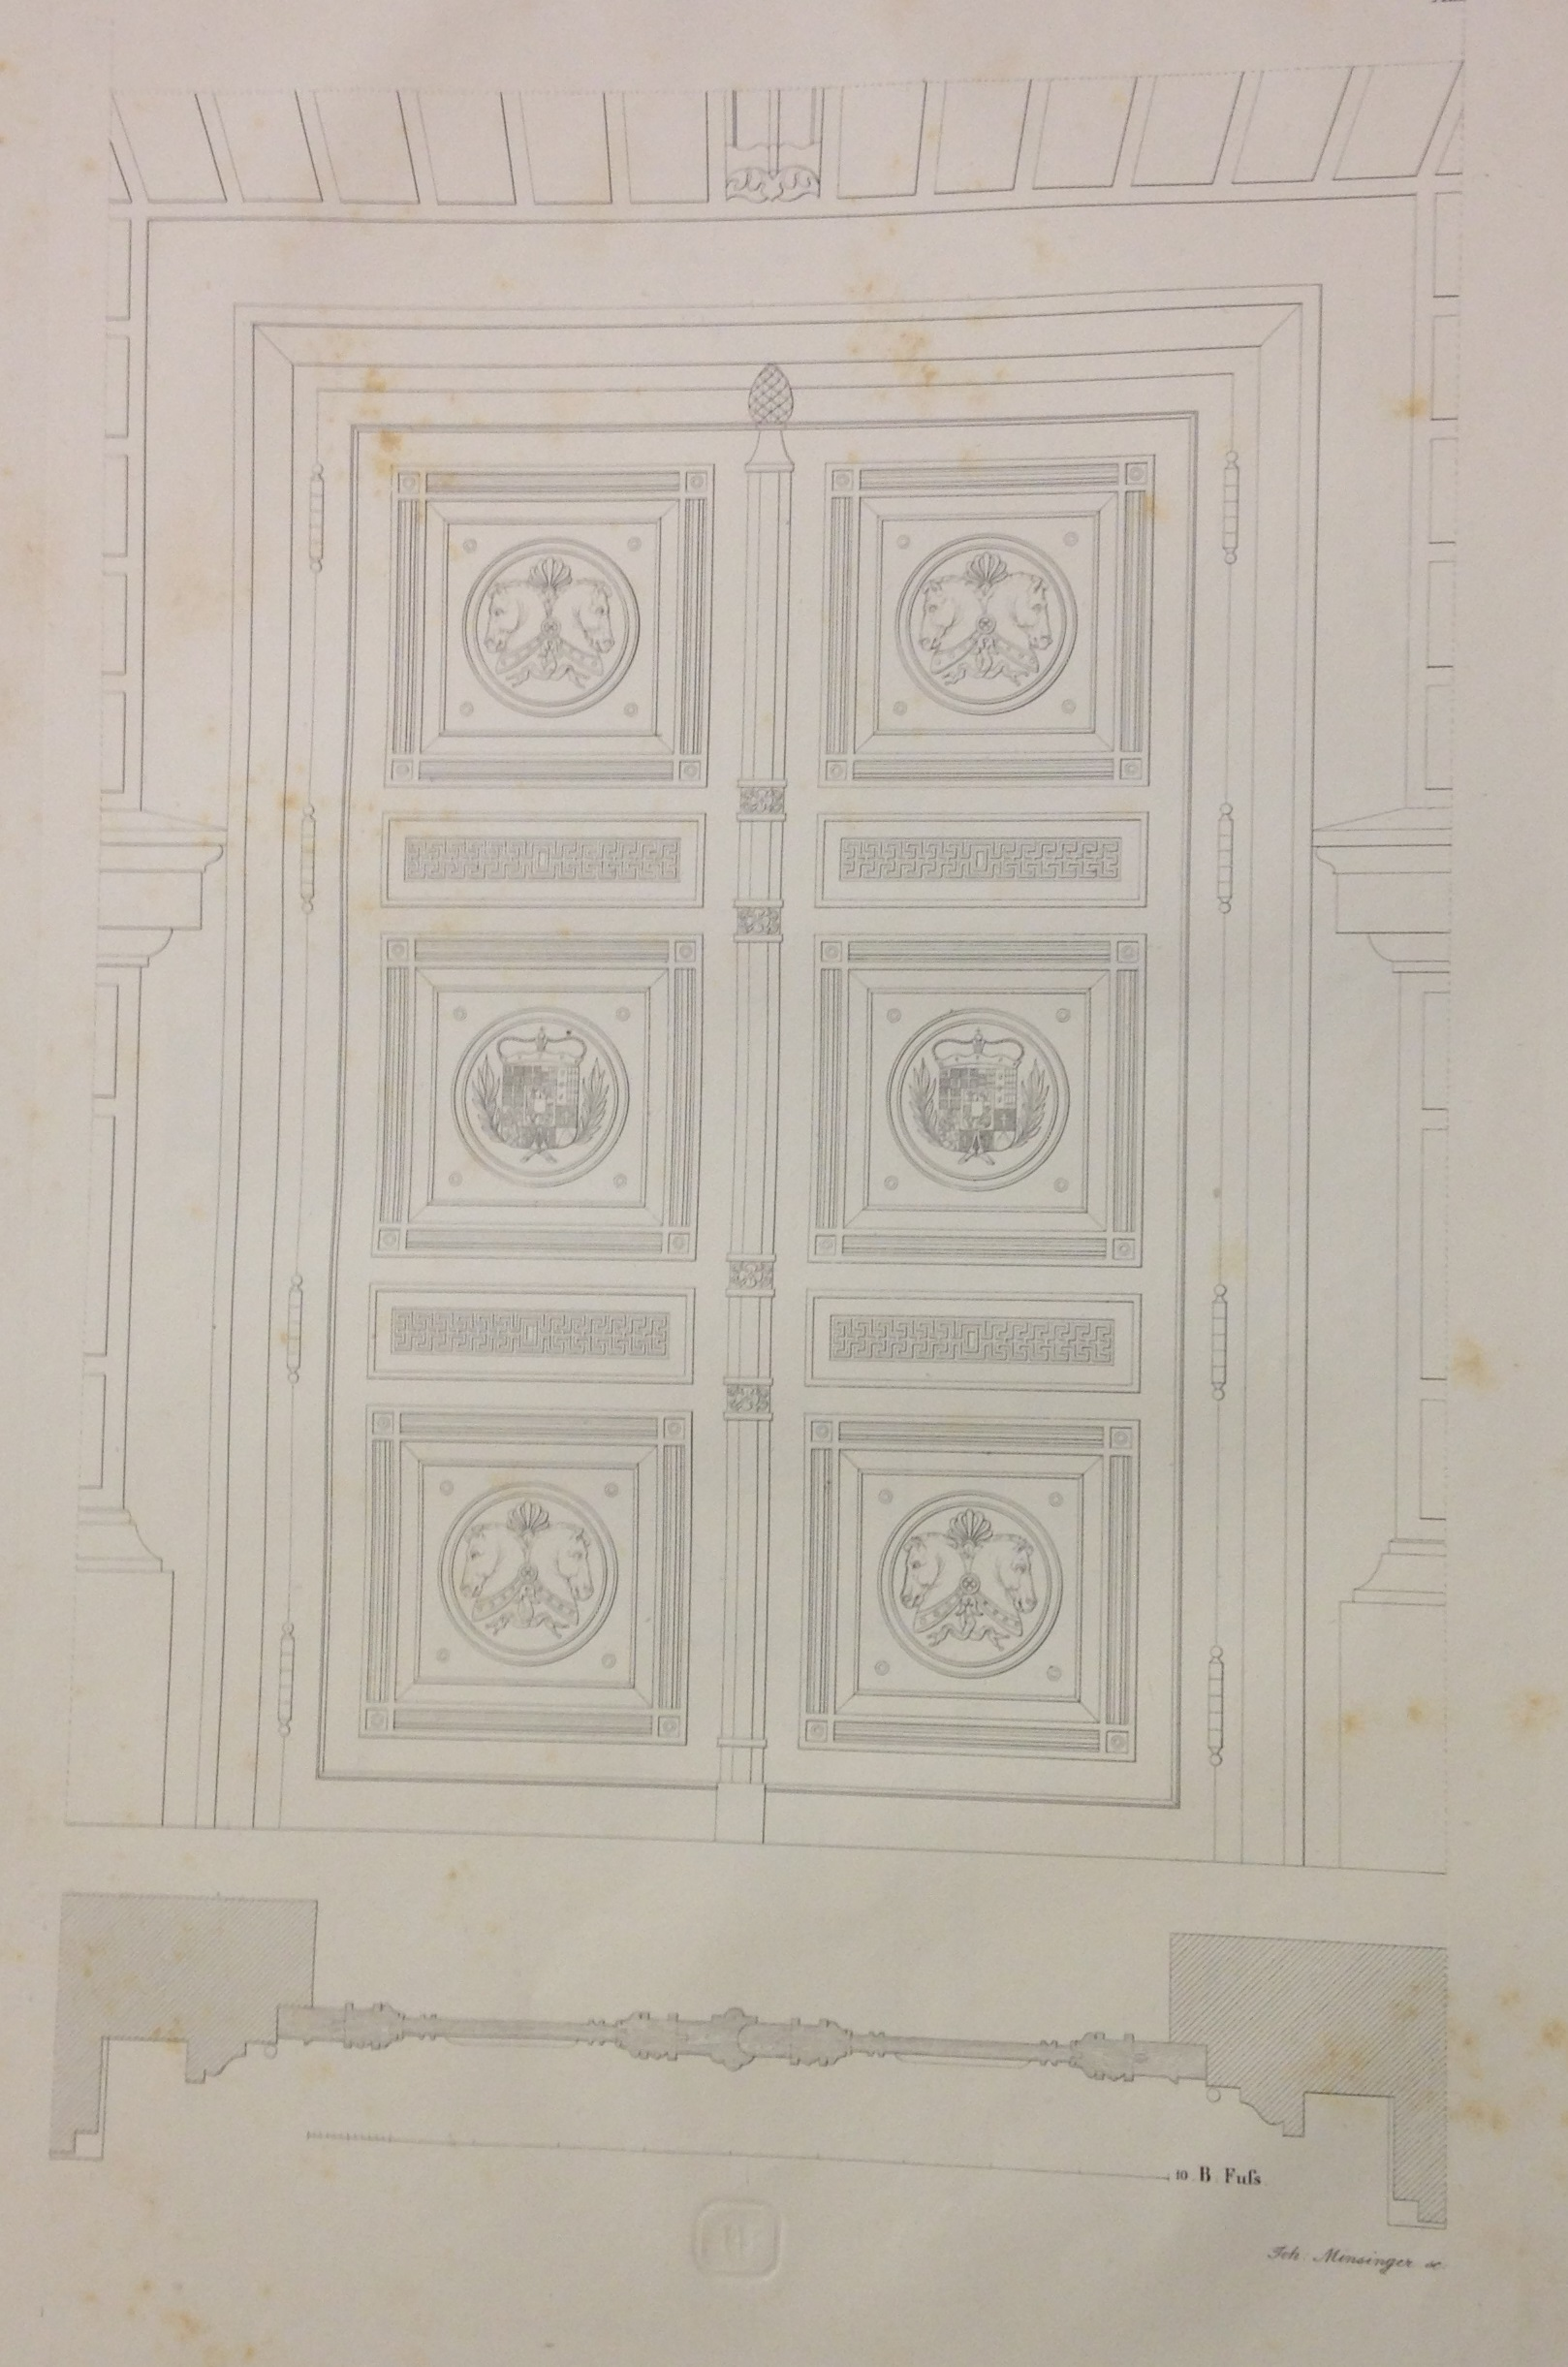 Architectural detail from Metivier, Grund-Plane ... Munich, 1836.  (NA8340 .M48 1836)